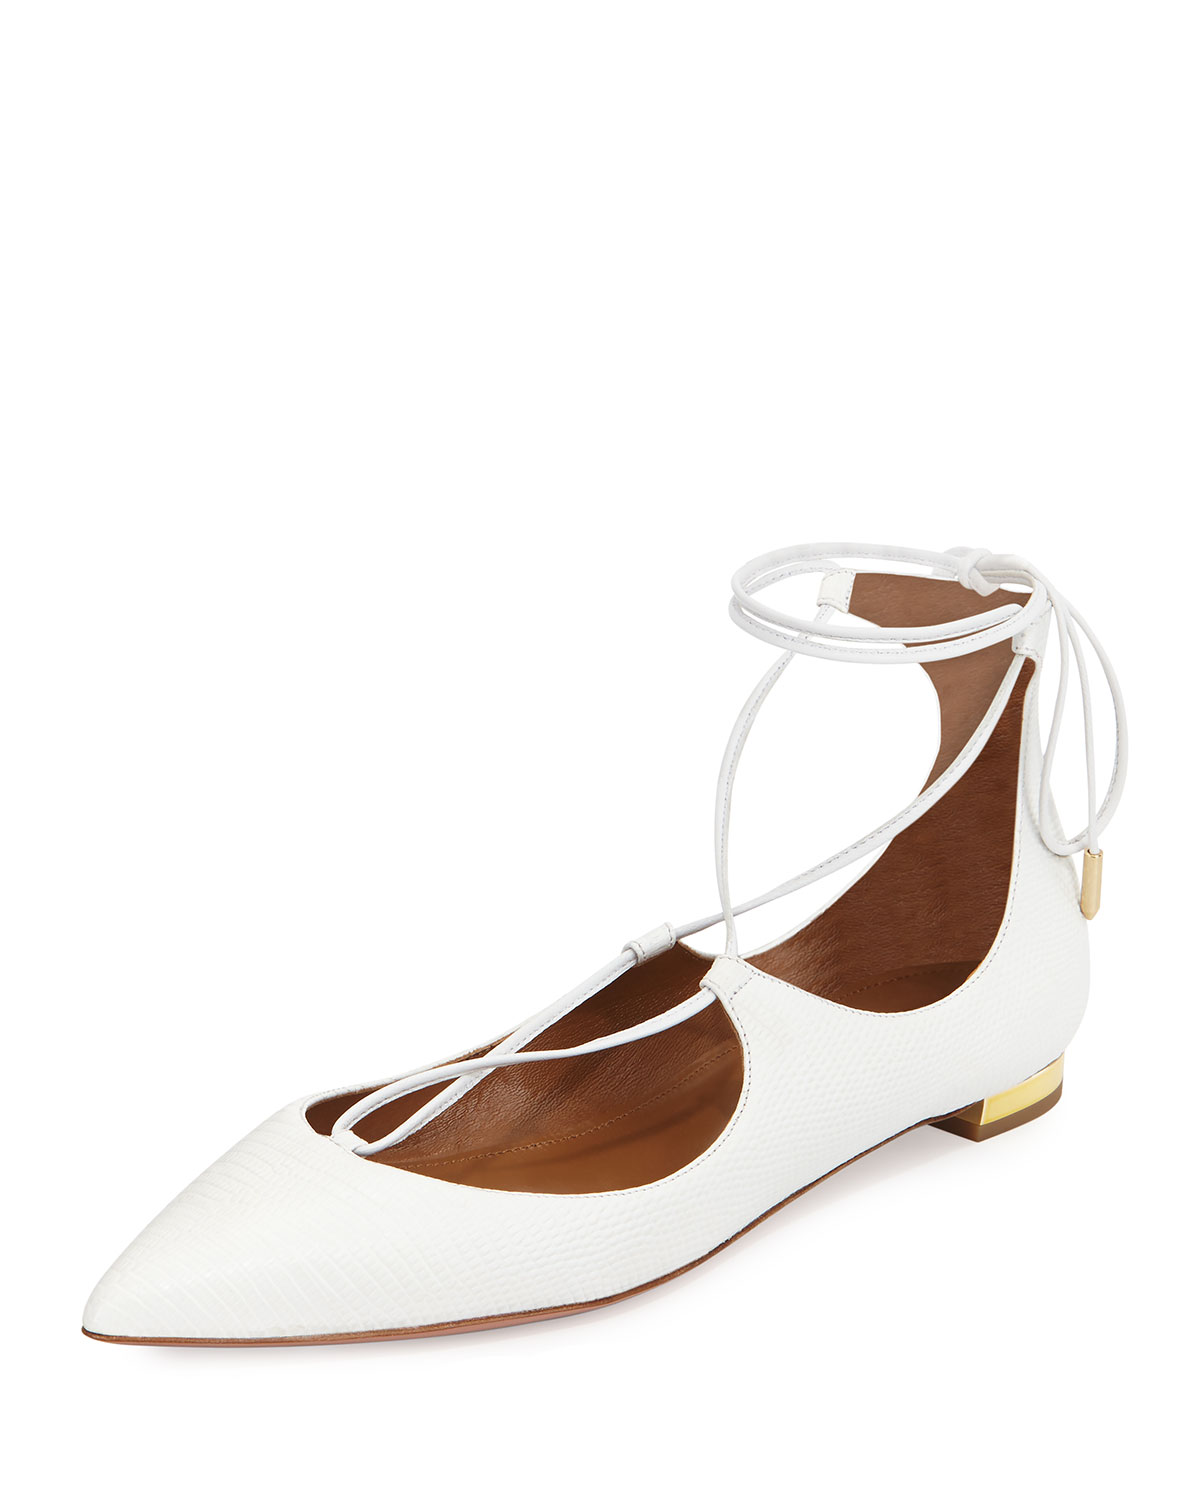 fast delivery for sale many kinds of sale online Aquazzura pointed ballerina shoes 17ajs